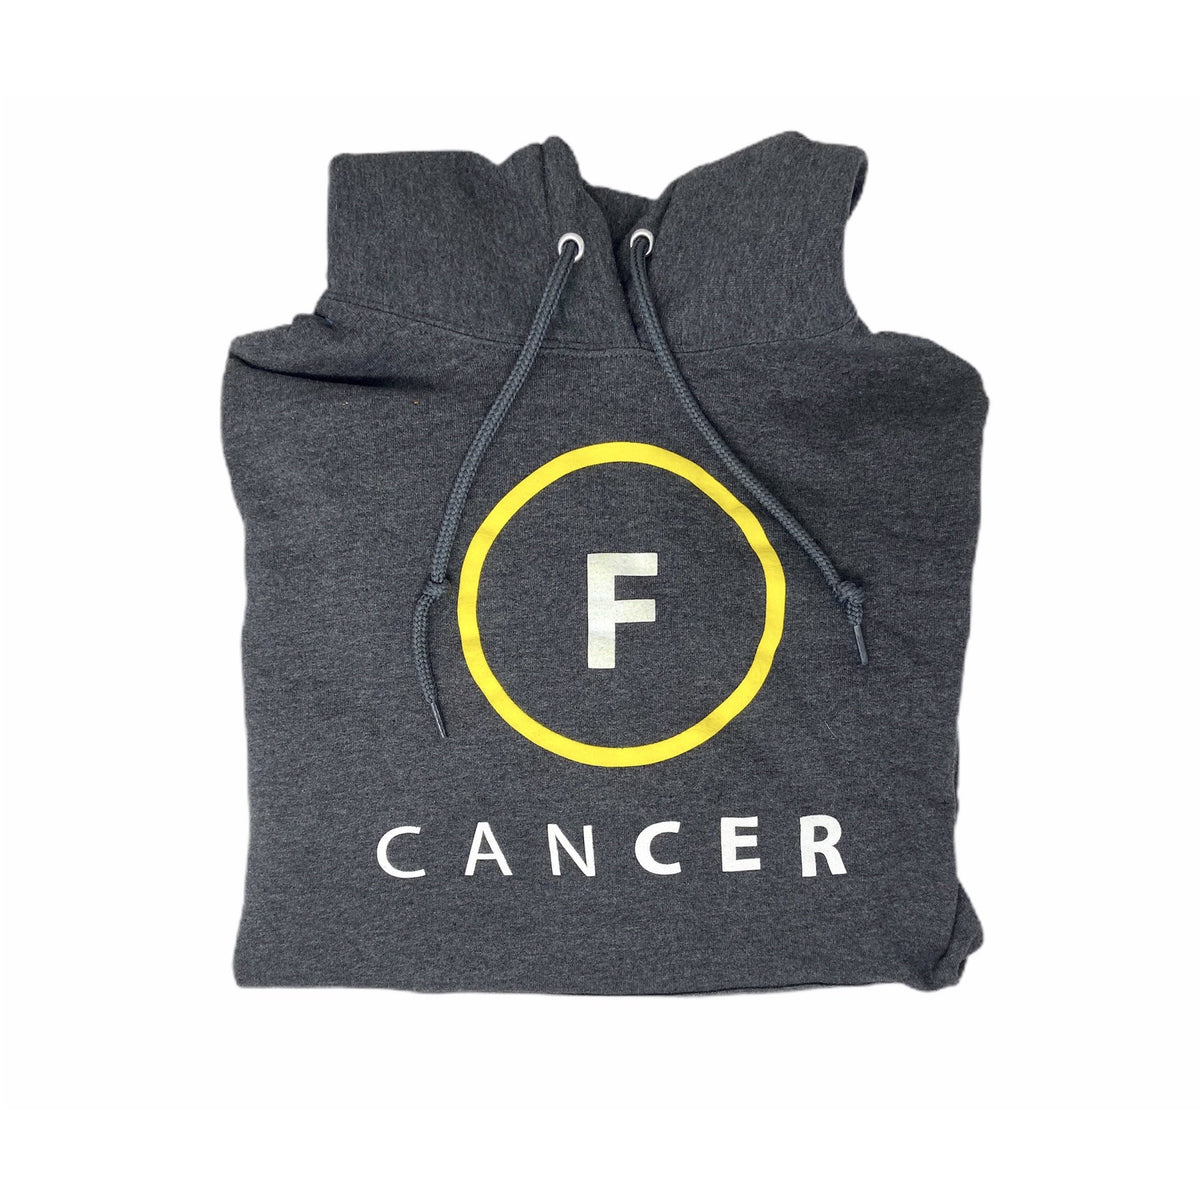 F Cancer Hoodie